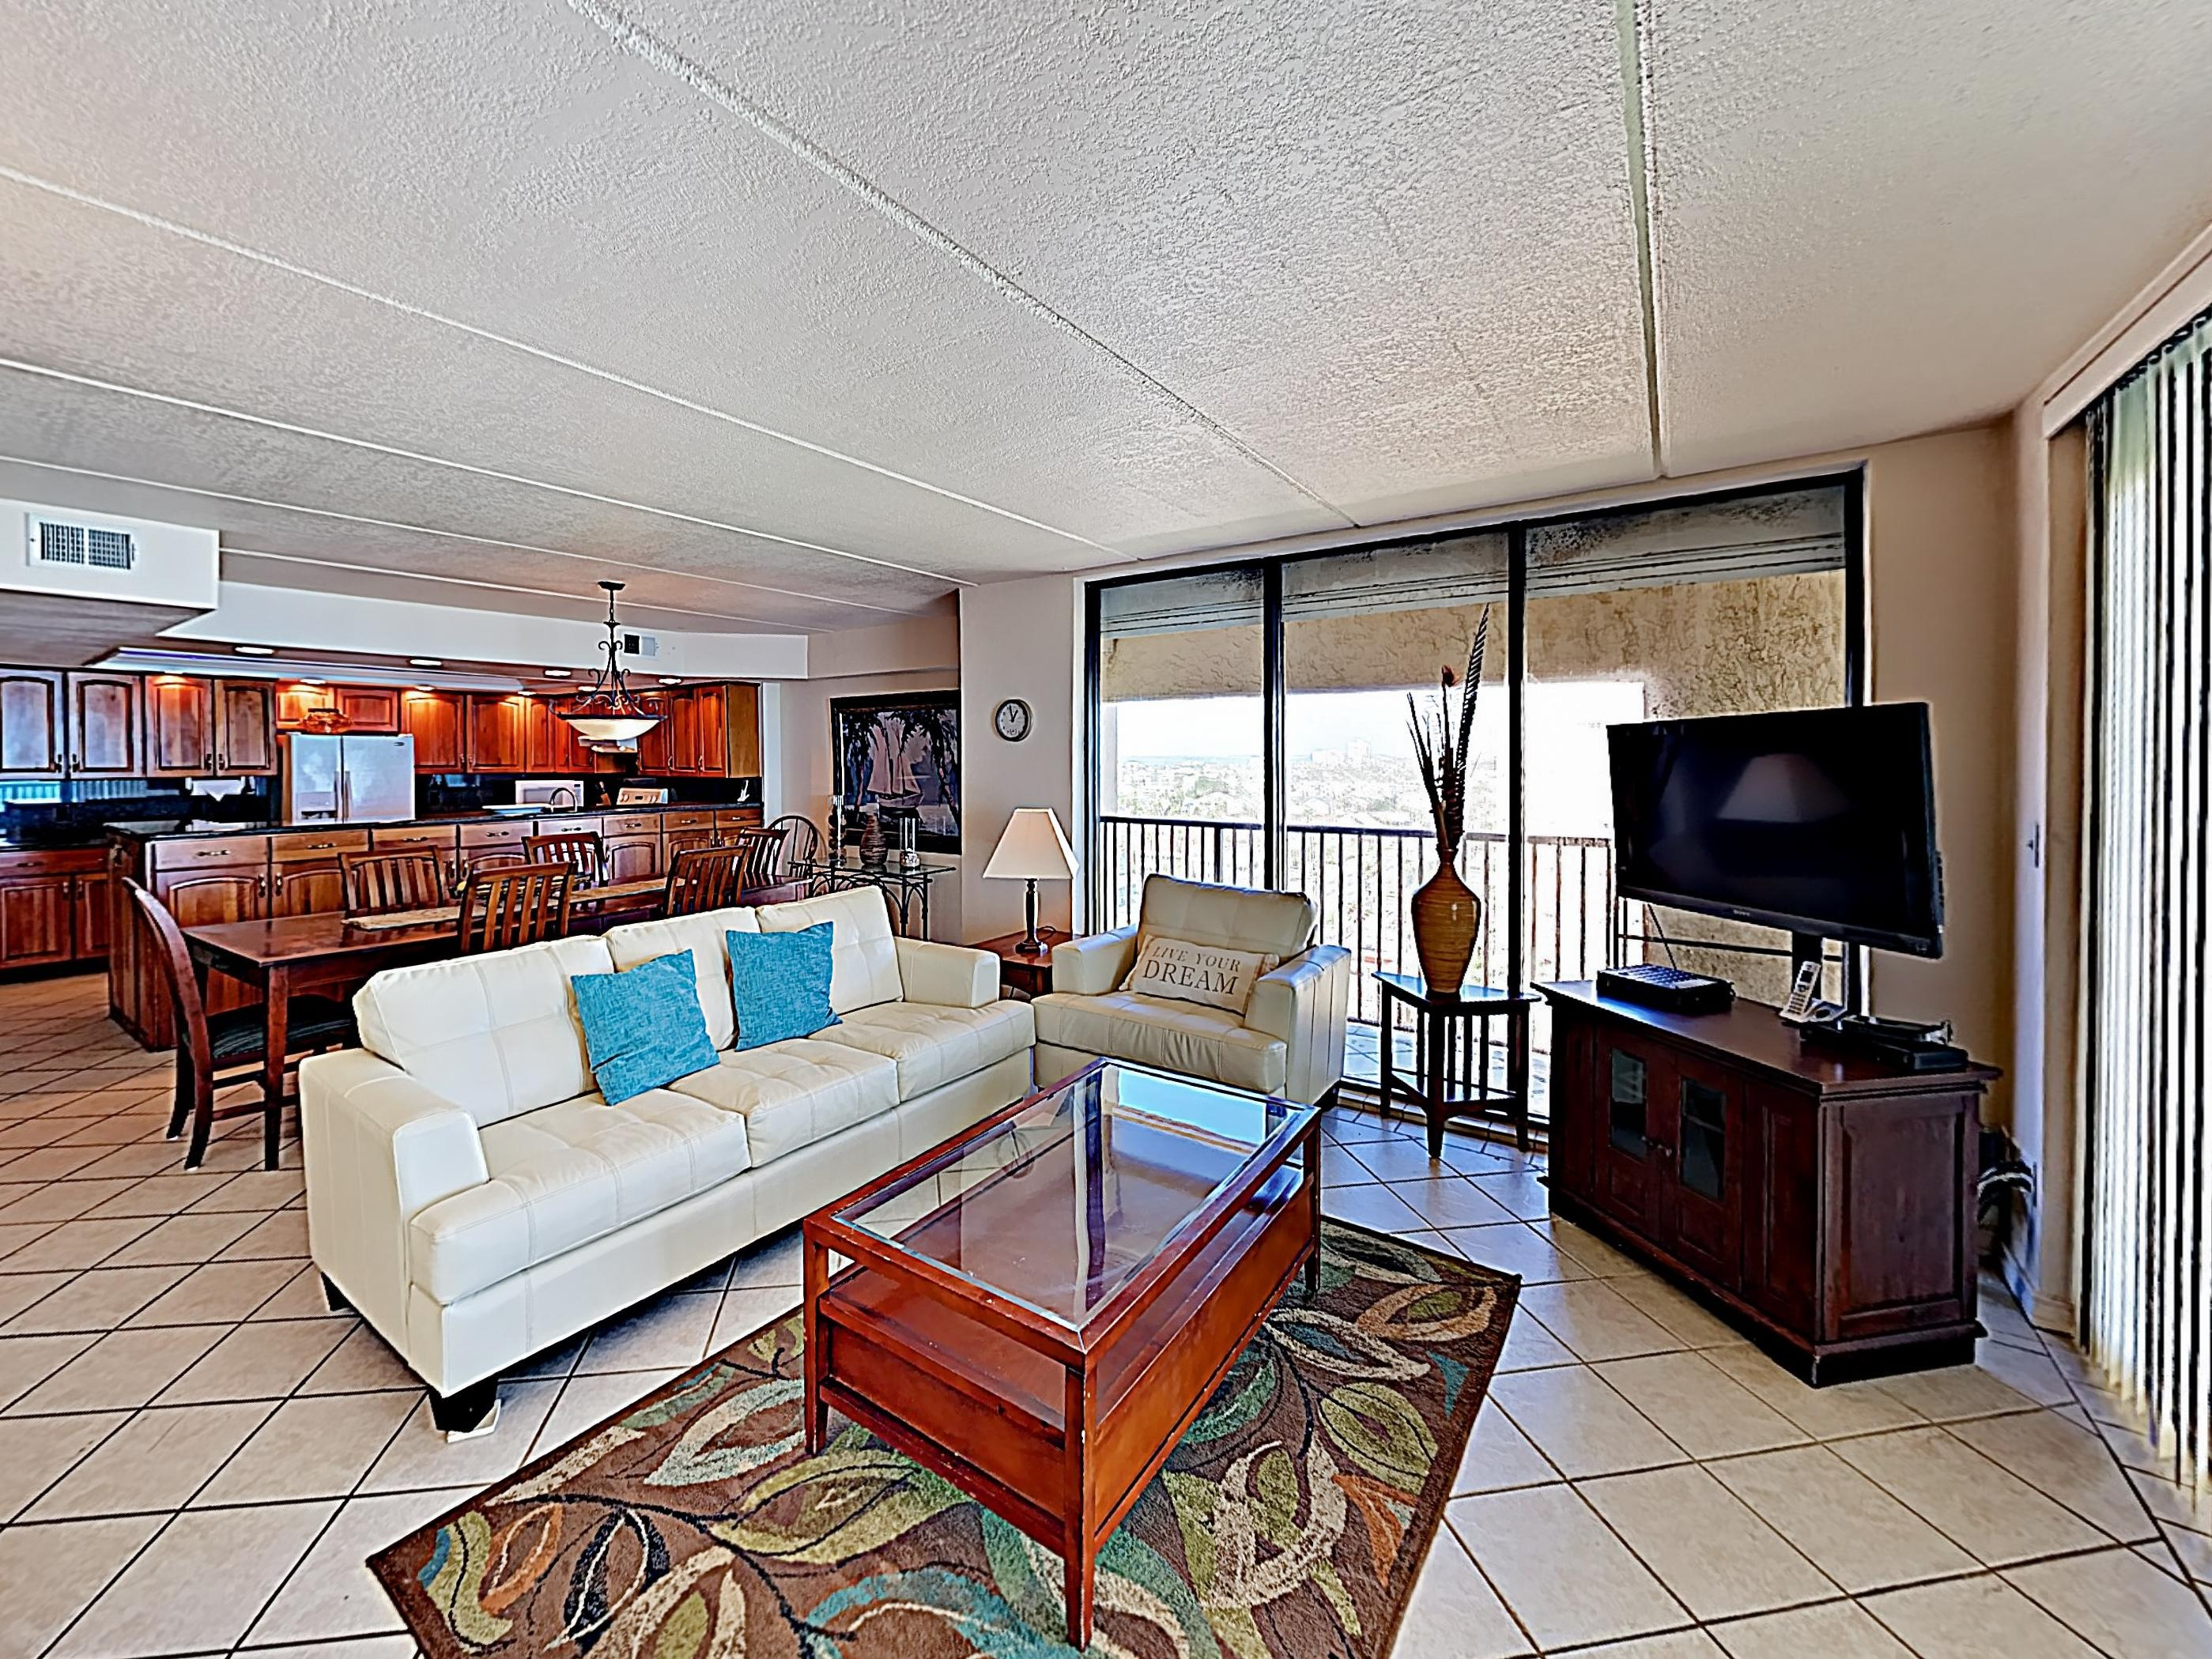 Welcome to Suntide III! This corner-unit condo is professionally managed by TurnKey Vacation Rentals.